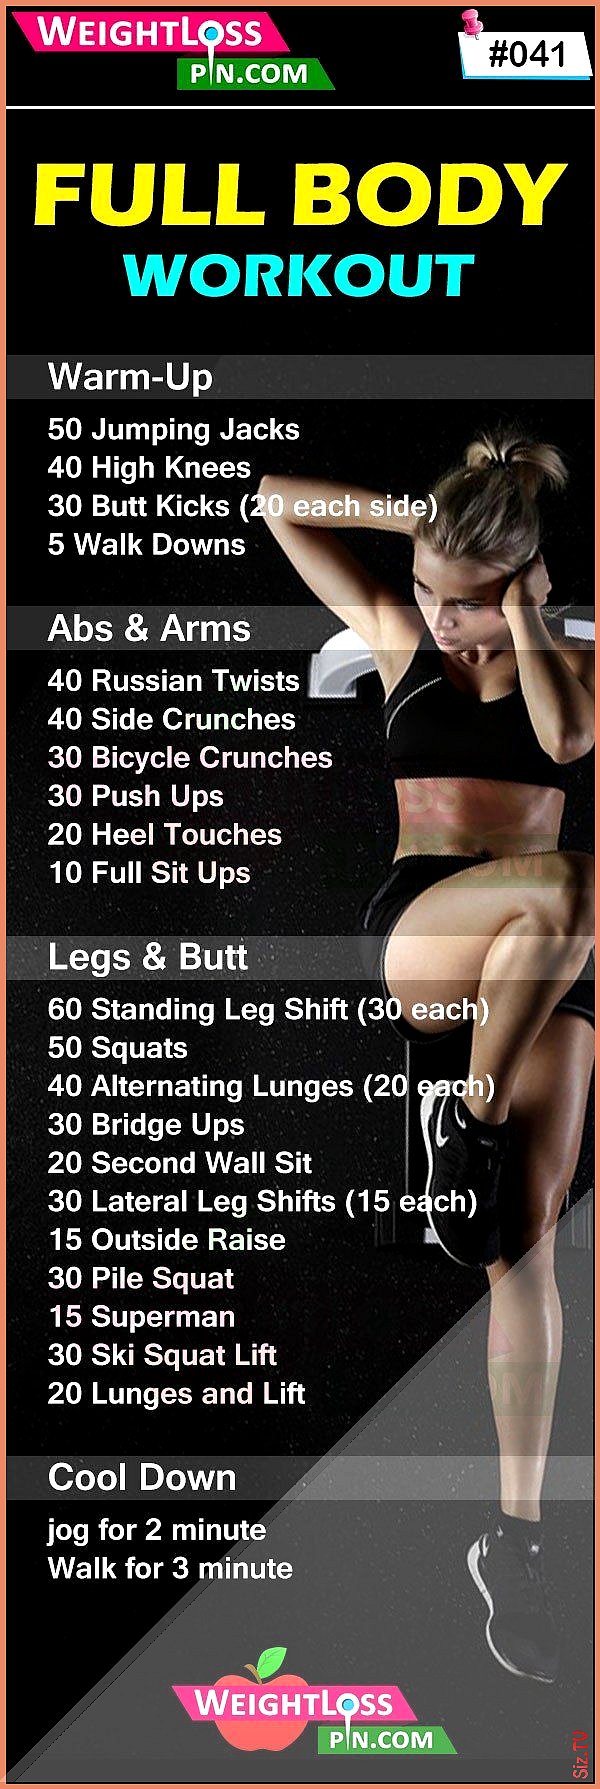 5 Best Total Body Workouts Challenges at Home 5 Best Total Body Workouts Challenges at Home Amy JayJ...